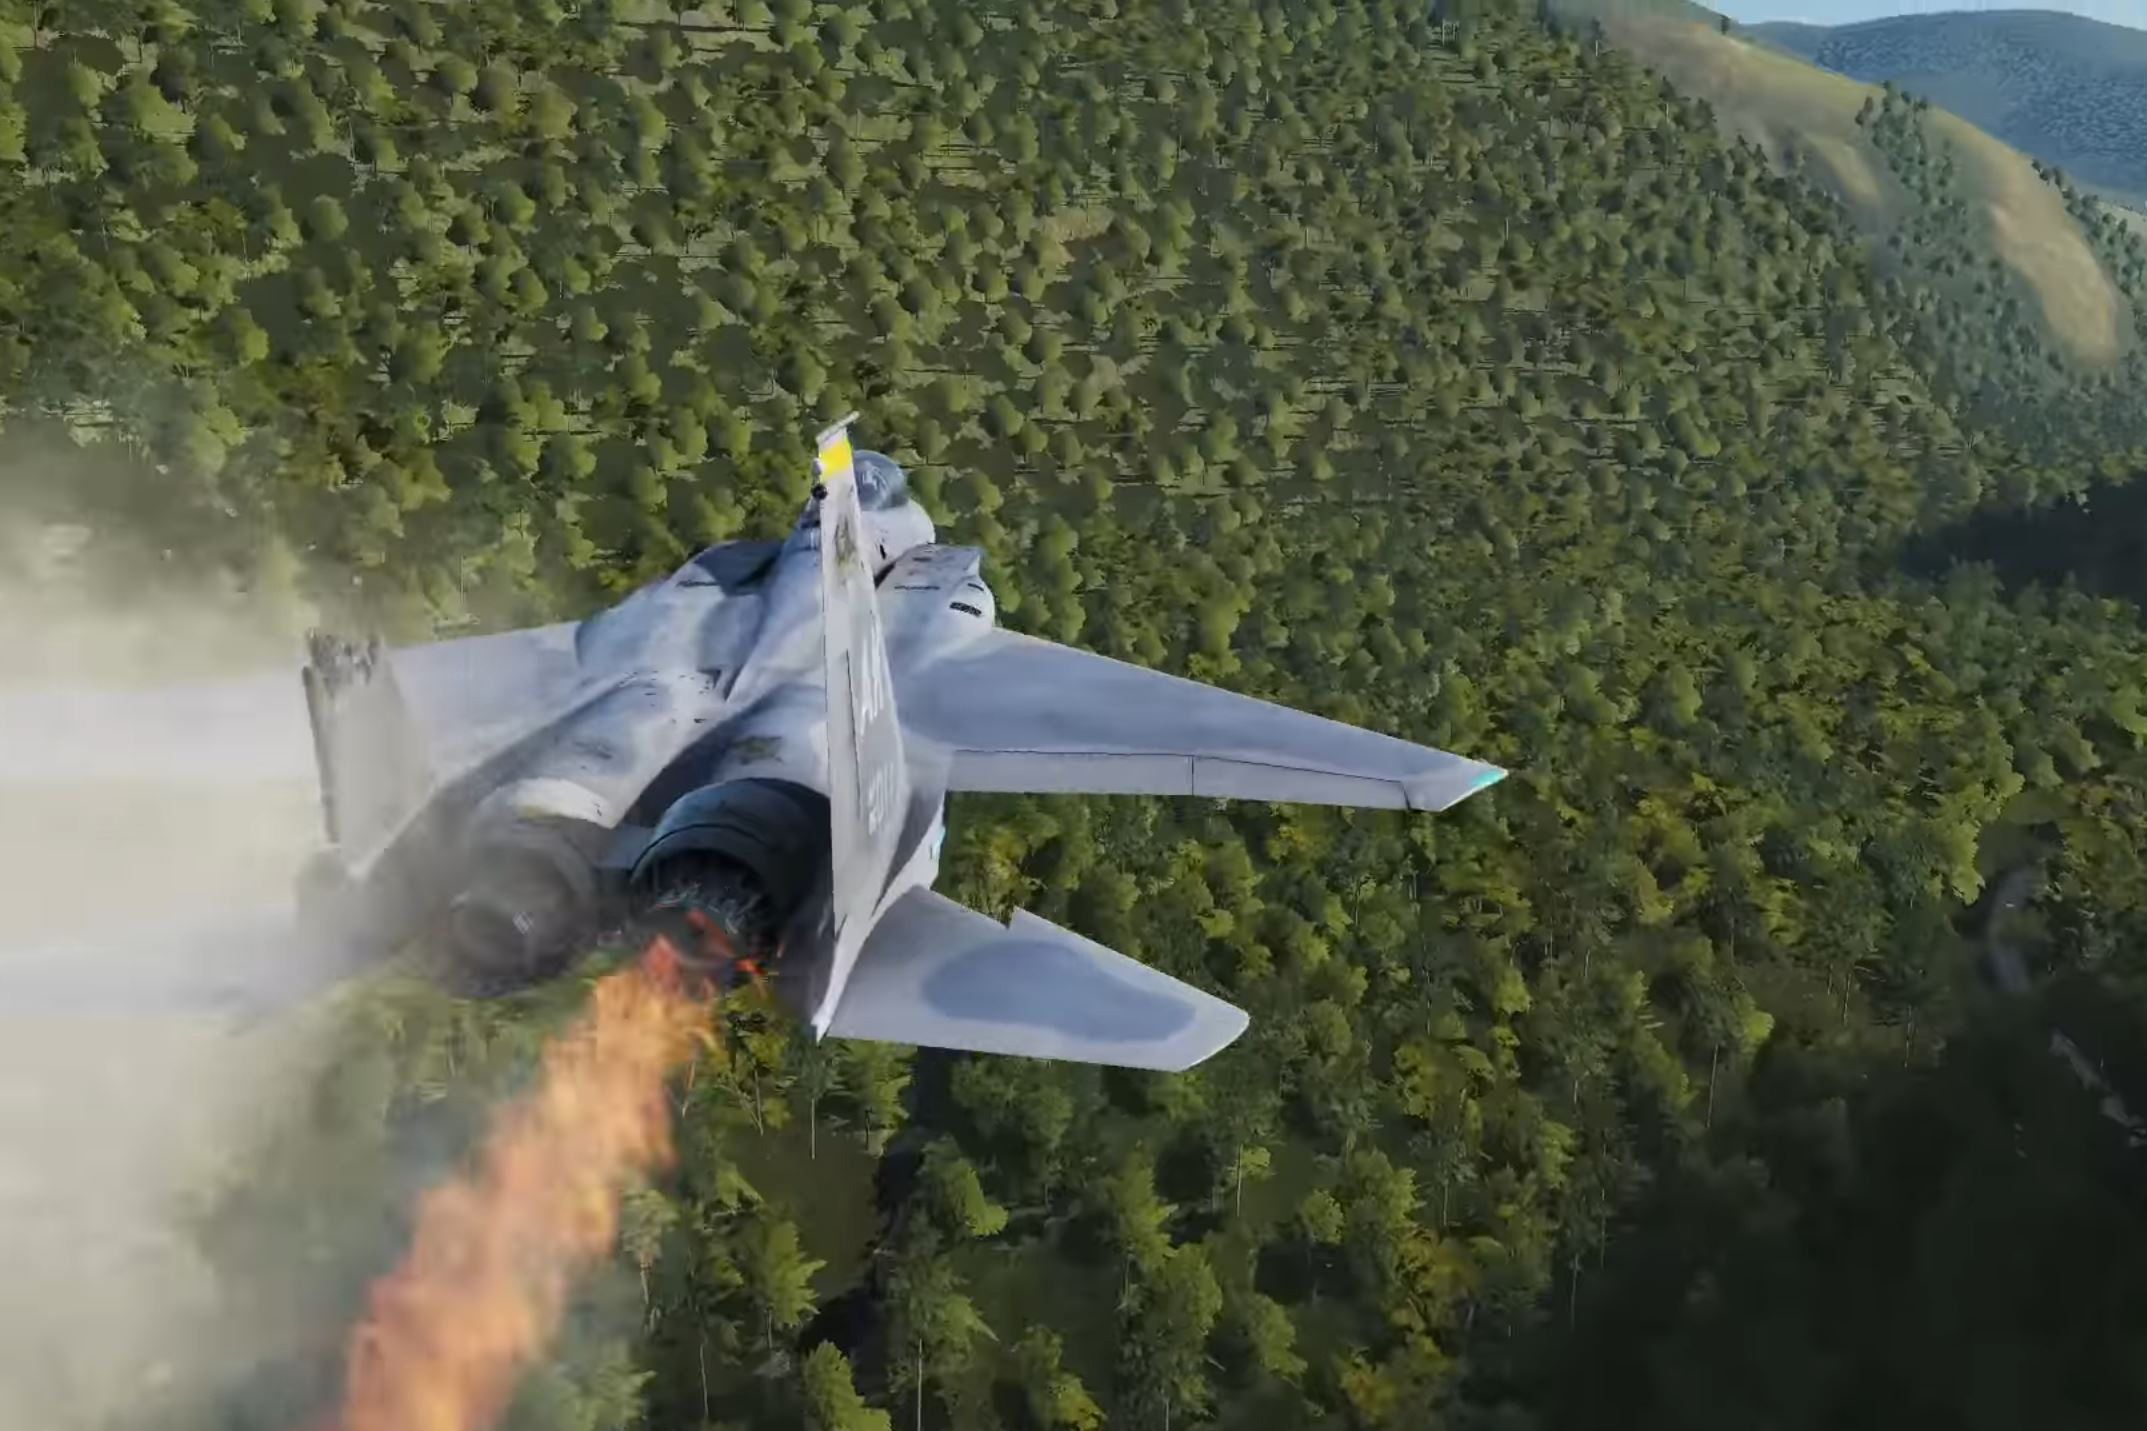 An F-15 nears the end of its run in the Valley of Death with the Grim Reapers community. It's the target of multiple radar-guided AAA batteries, missing several control surfaces, and currently on fire.